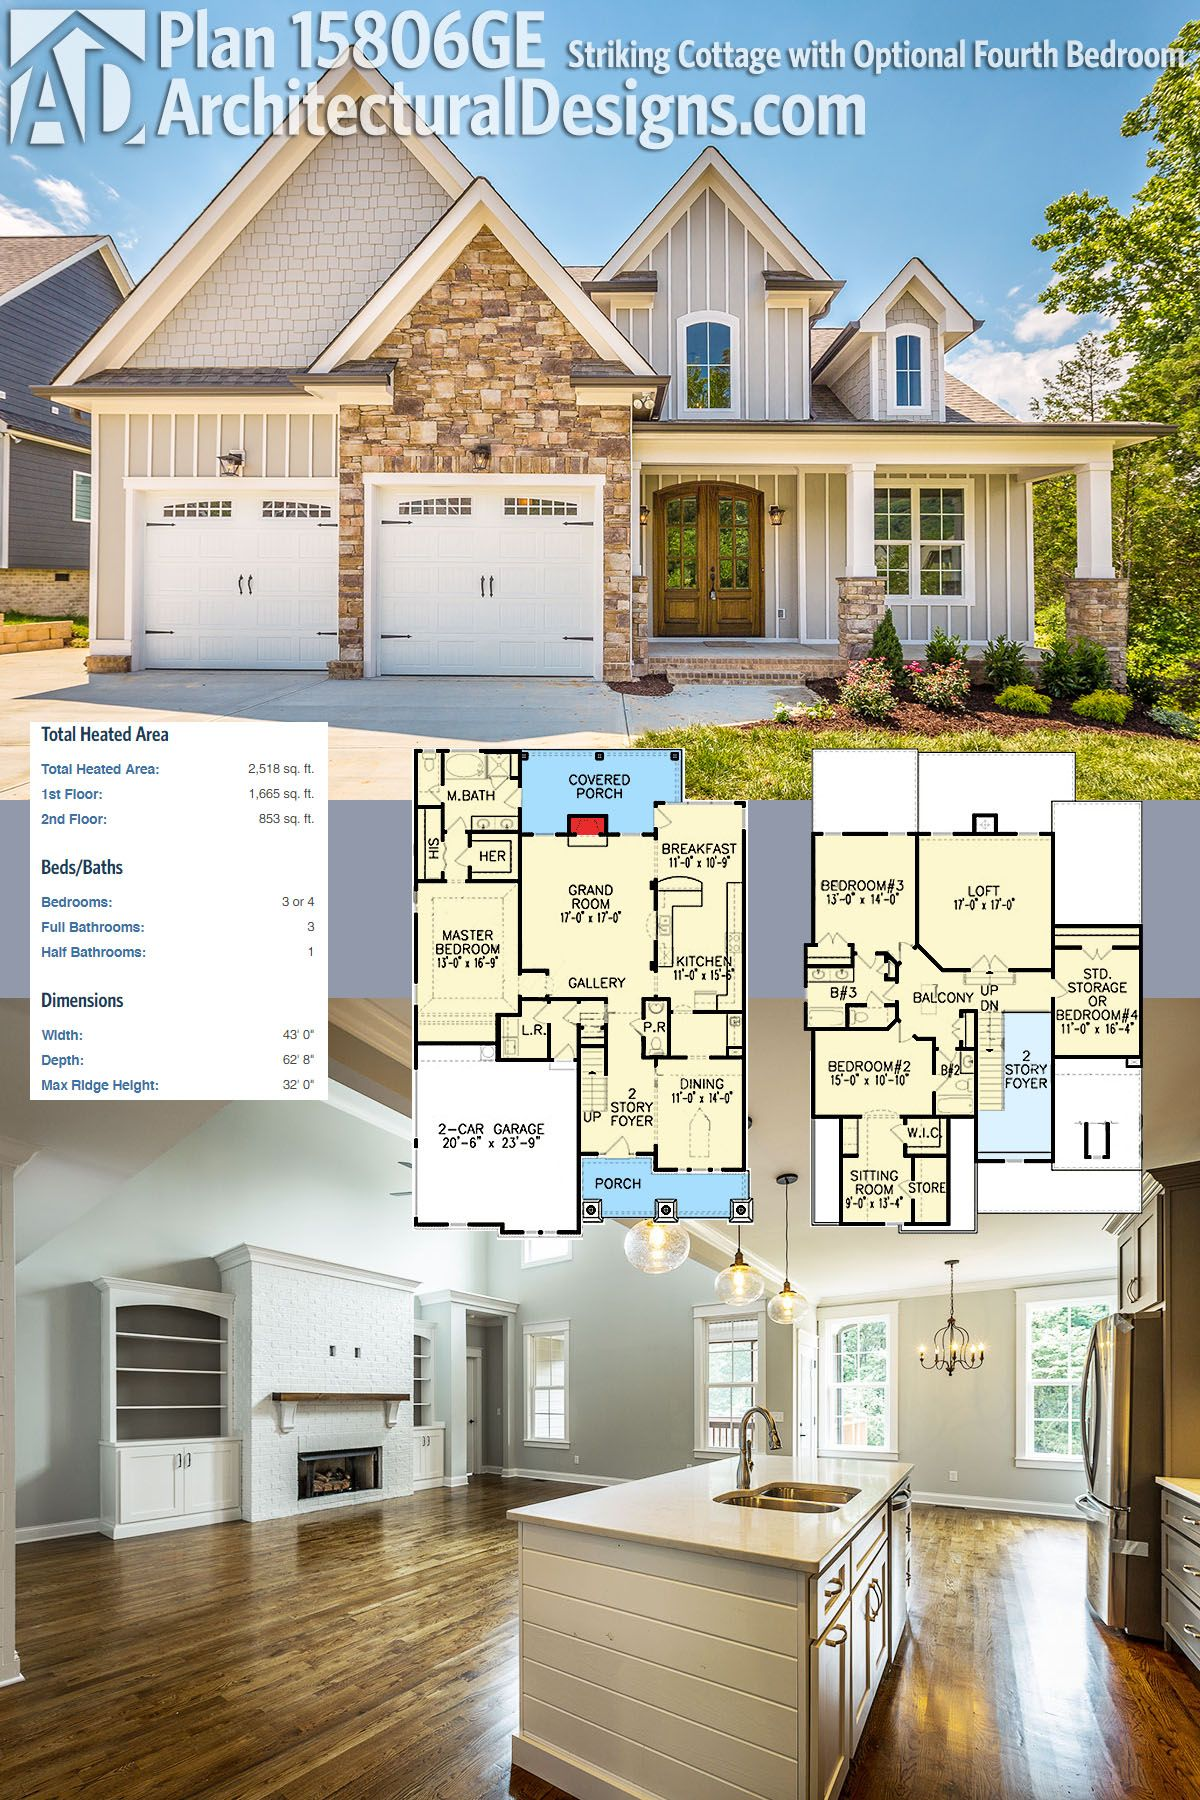 Our client built architectural designs house plan ge with  stone and board batten exterior also striking cottage optional fourth bedroom in rh fi pinterest